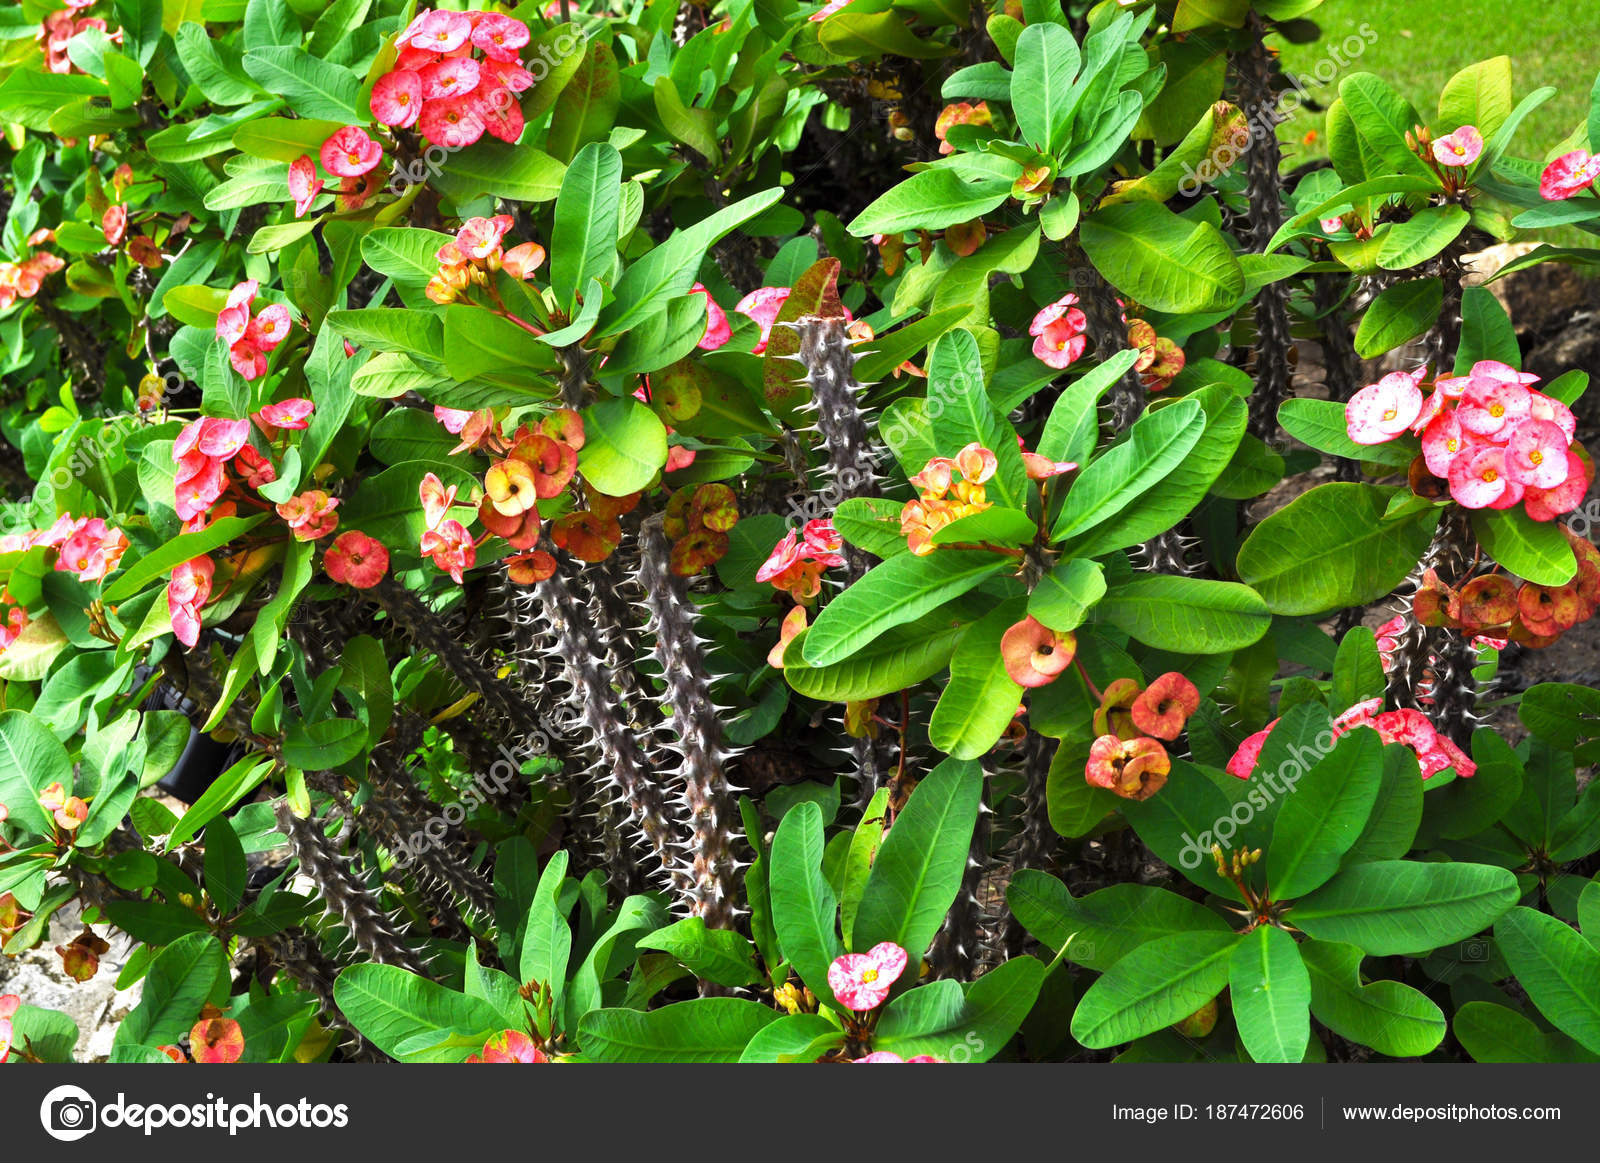 Prickly Cacti Cute Pink Flowers Bright Green Leaves Stock Photo